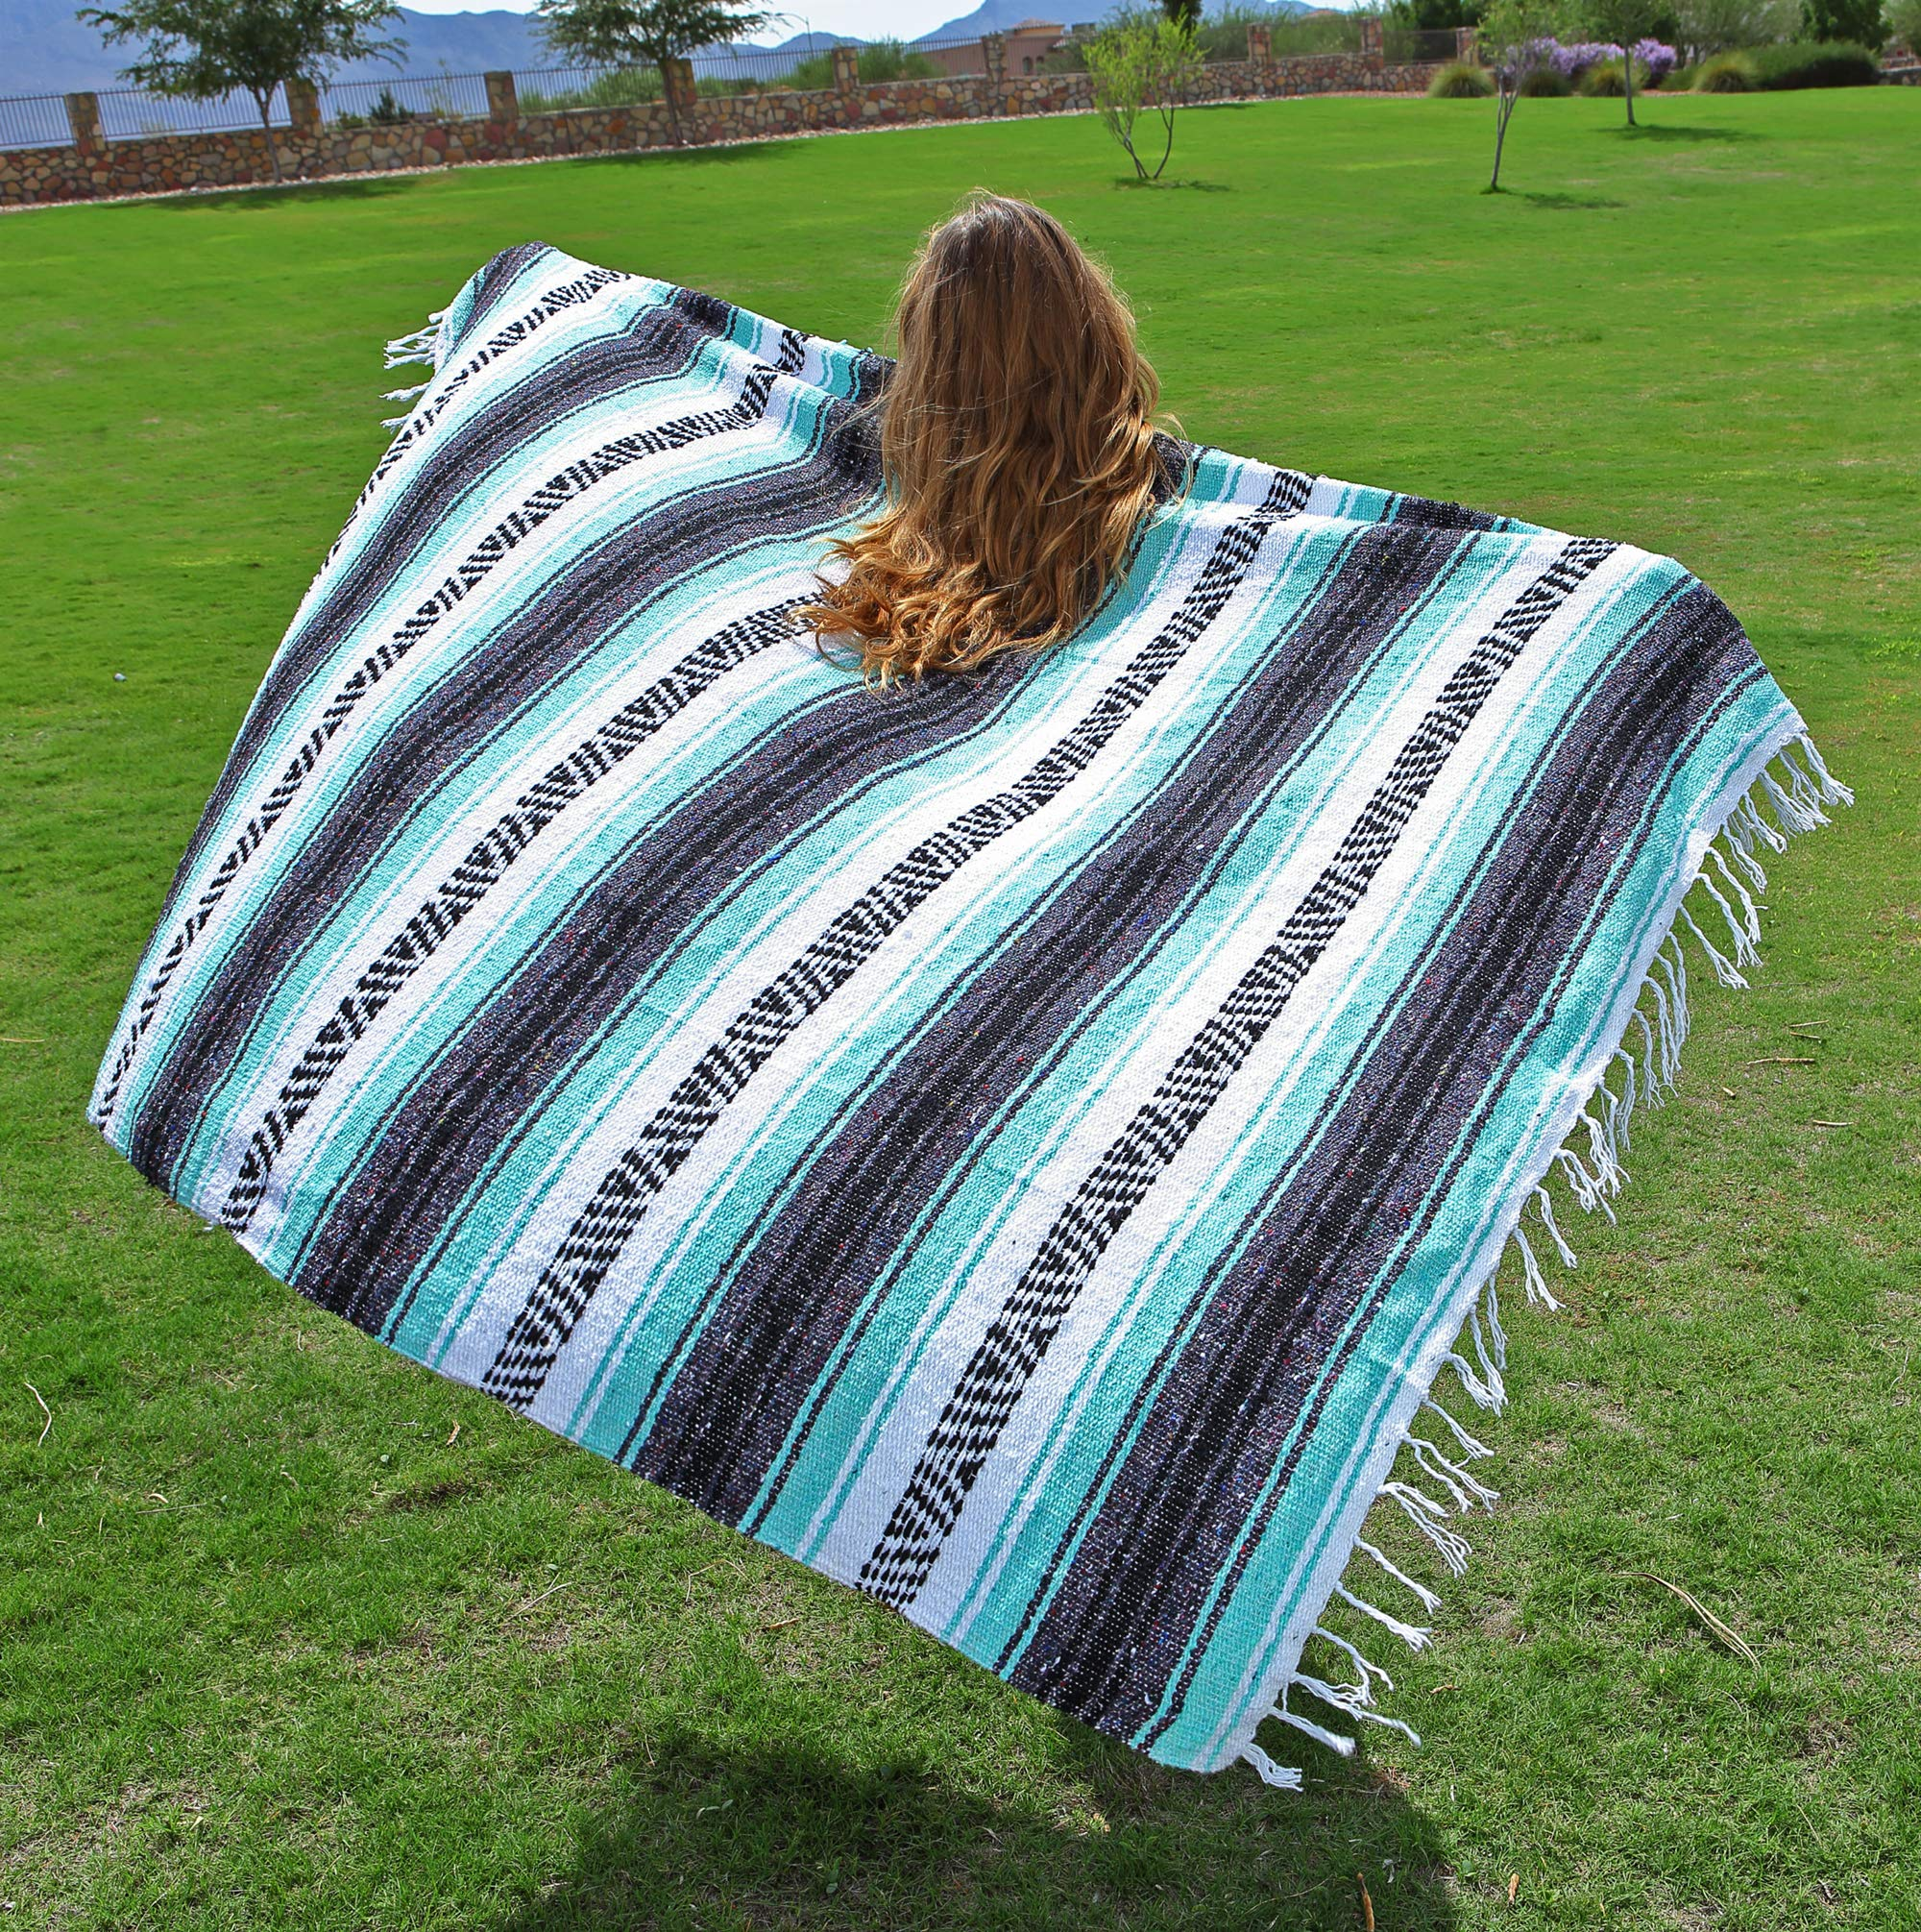 El Paso Designs Genuine Mexican Falsa Blanket - Yoga Studio Blanket, Colorful, Soft Woven Serape Imported from Mexico (Cool Mint & Gray) by El Paso Designs (Image #4)